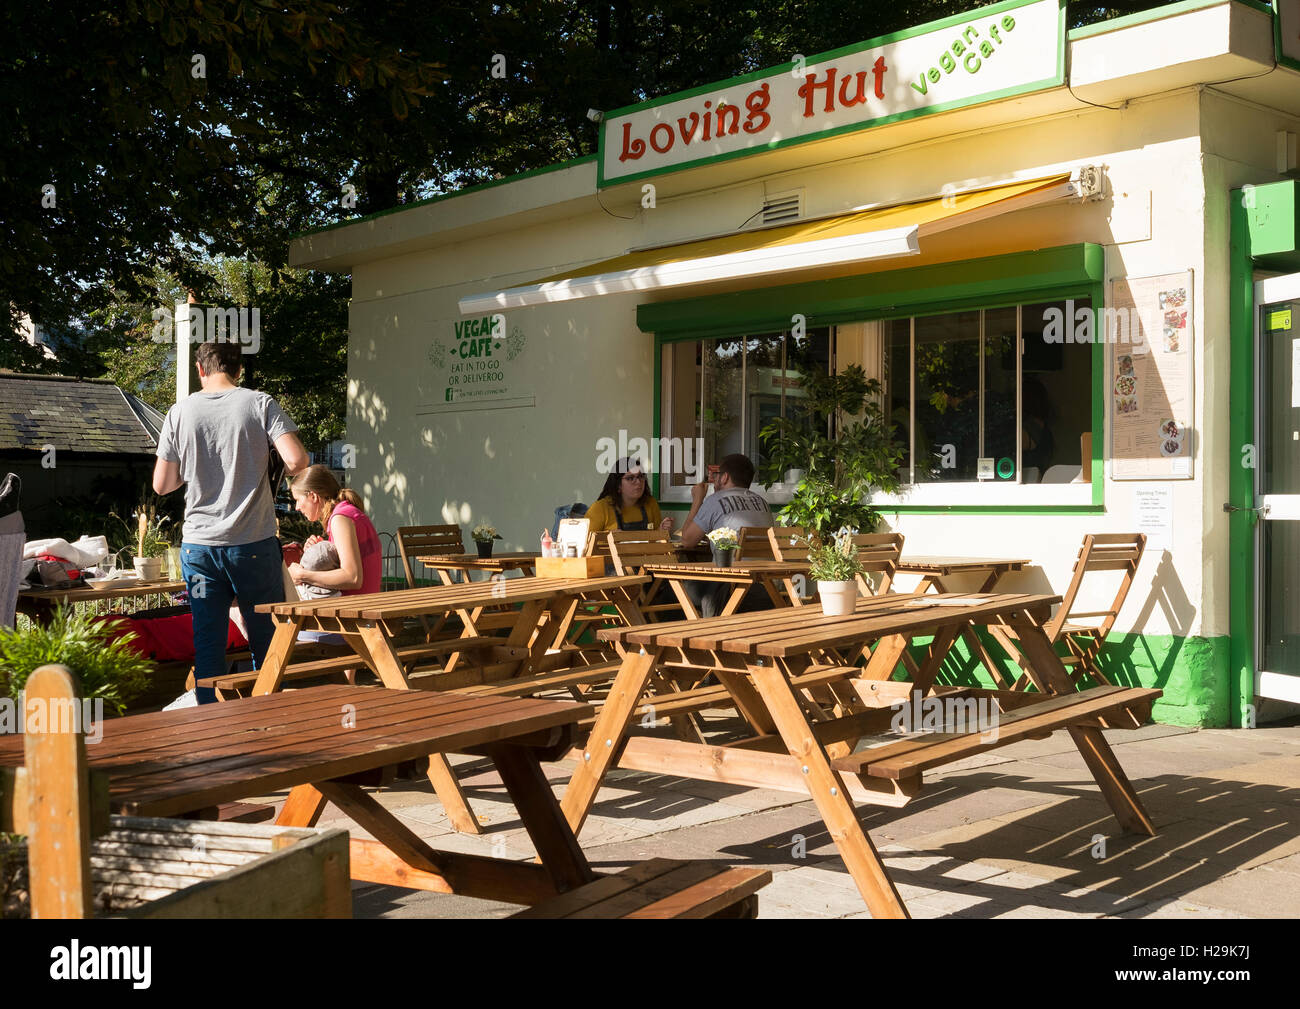 People eating outside the Loving Hut, Vegan Cafe on The Level in Brighton - Stock Image